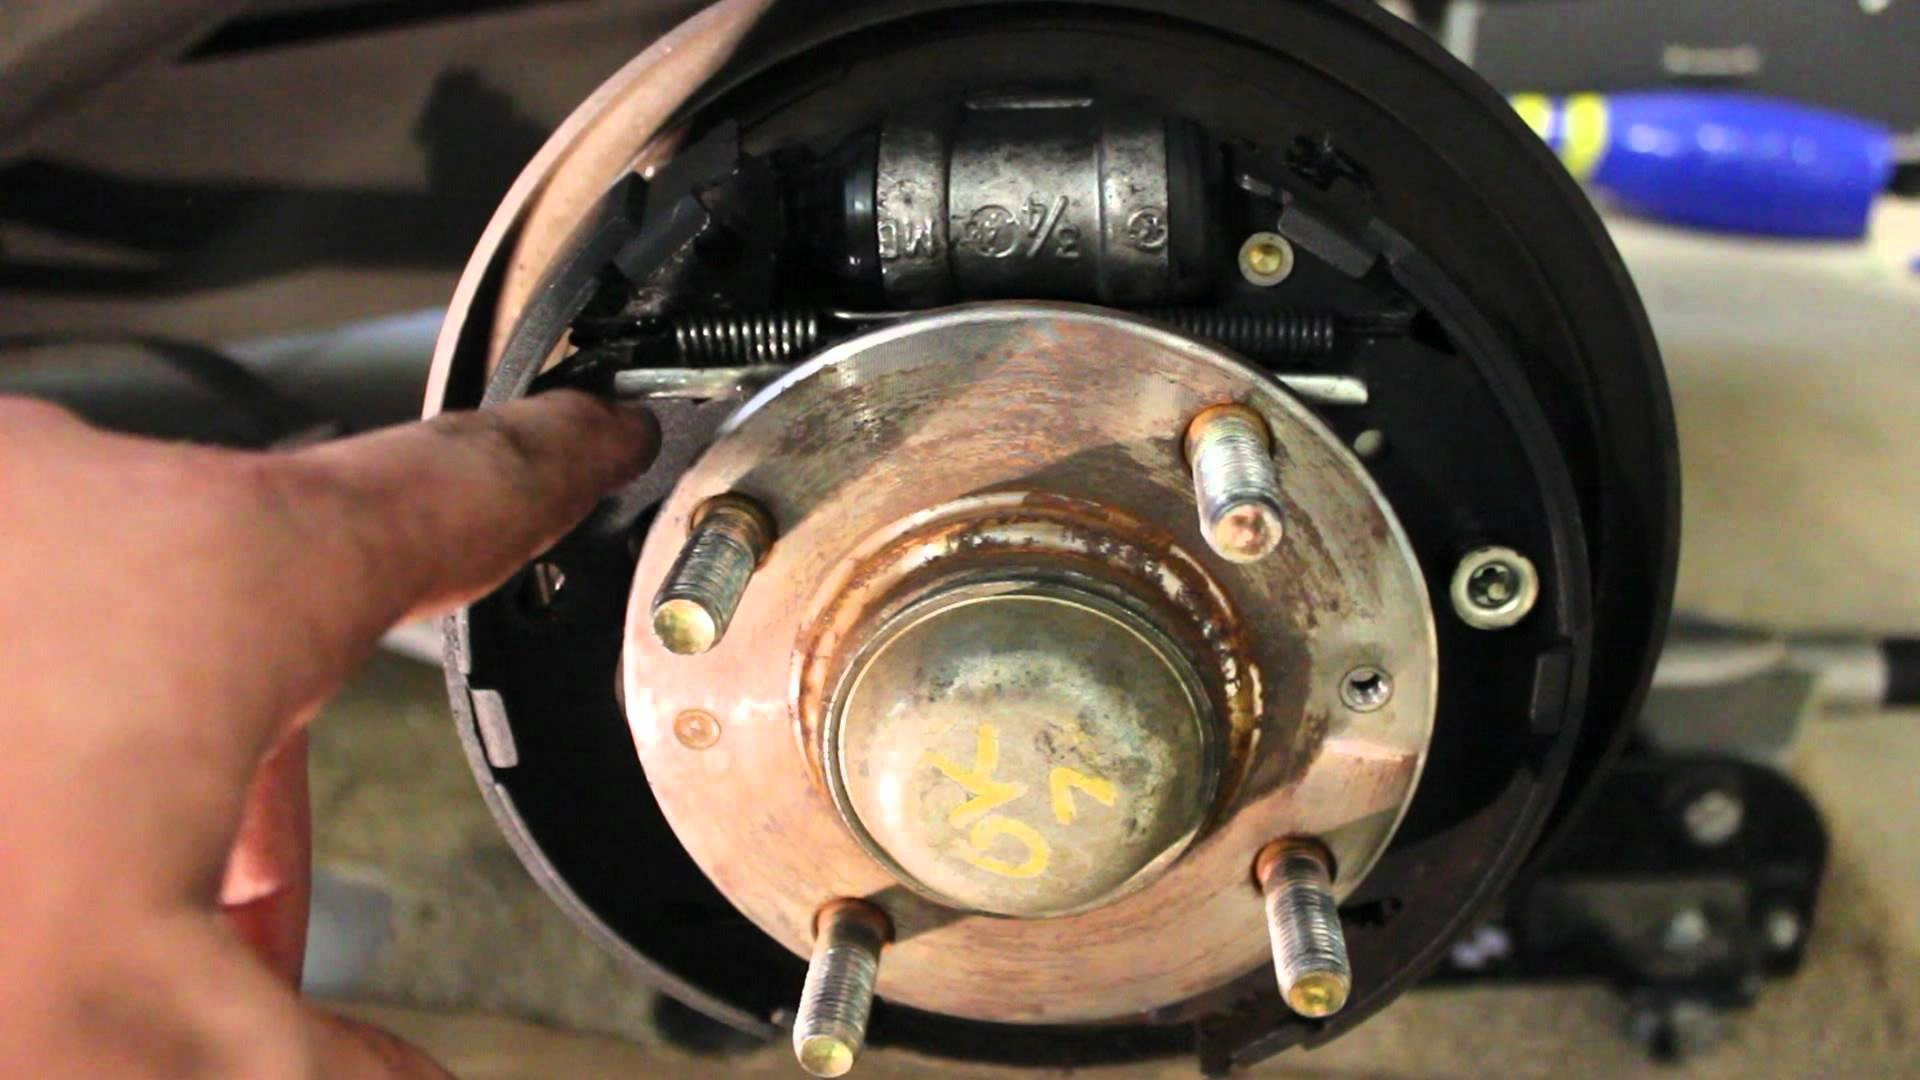 drum brake diagram how to install replace rear drum brakes totaline thermostat wiring diagram p374 totaline thermostat wiring diagram p374 totaline thermostat wiring diagram p374 totaline thermostat wiring diagram p374